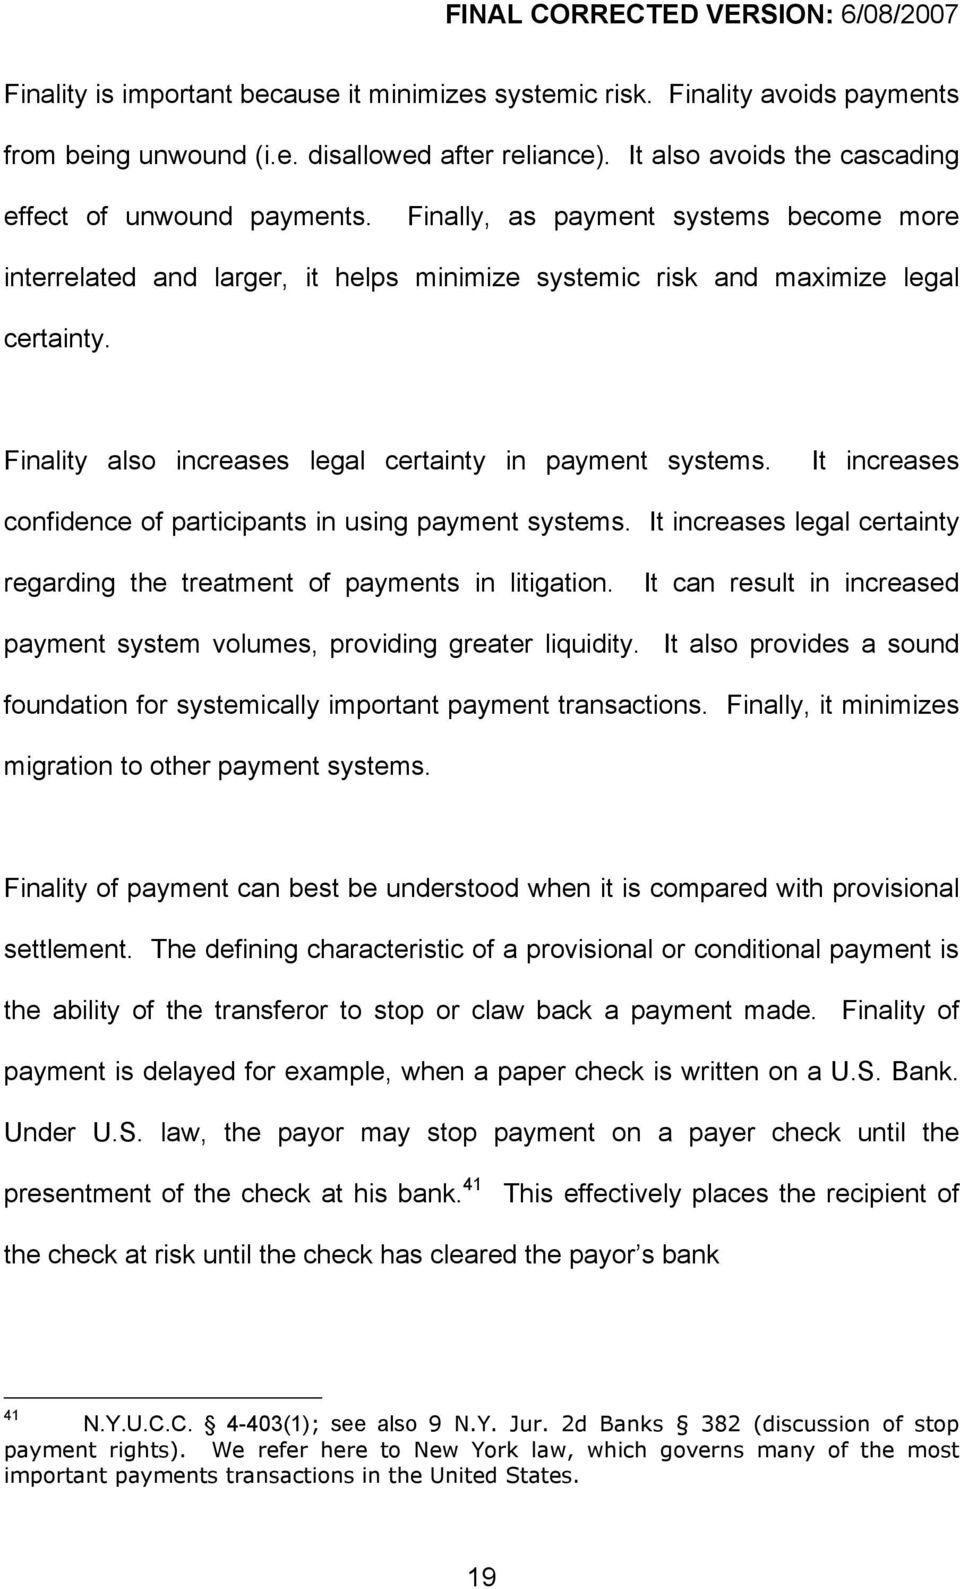 It increases confidence of participants in using payment systems. It increases legal certainty regarding the treatment of payments in litigation.